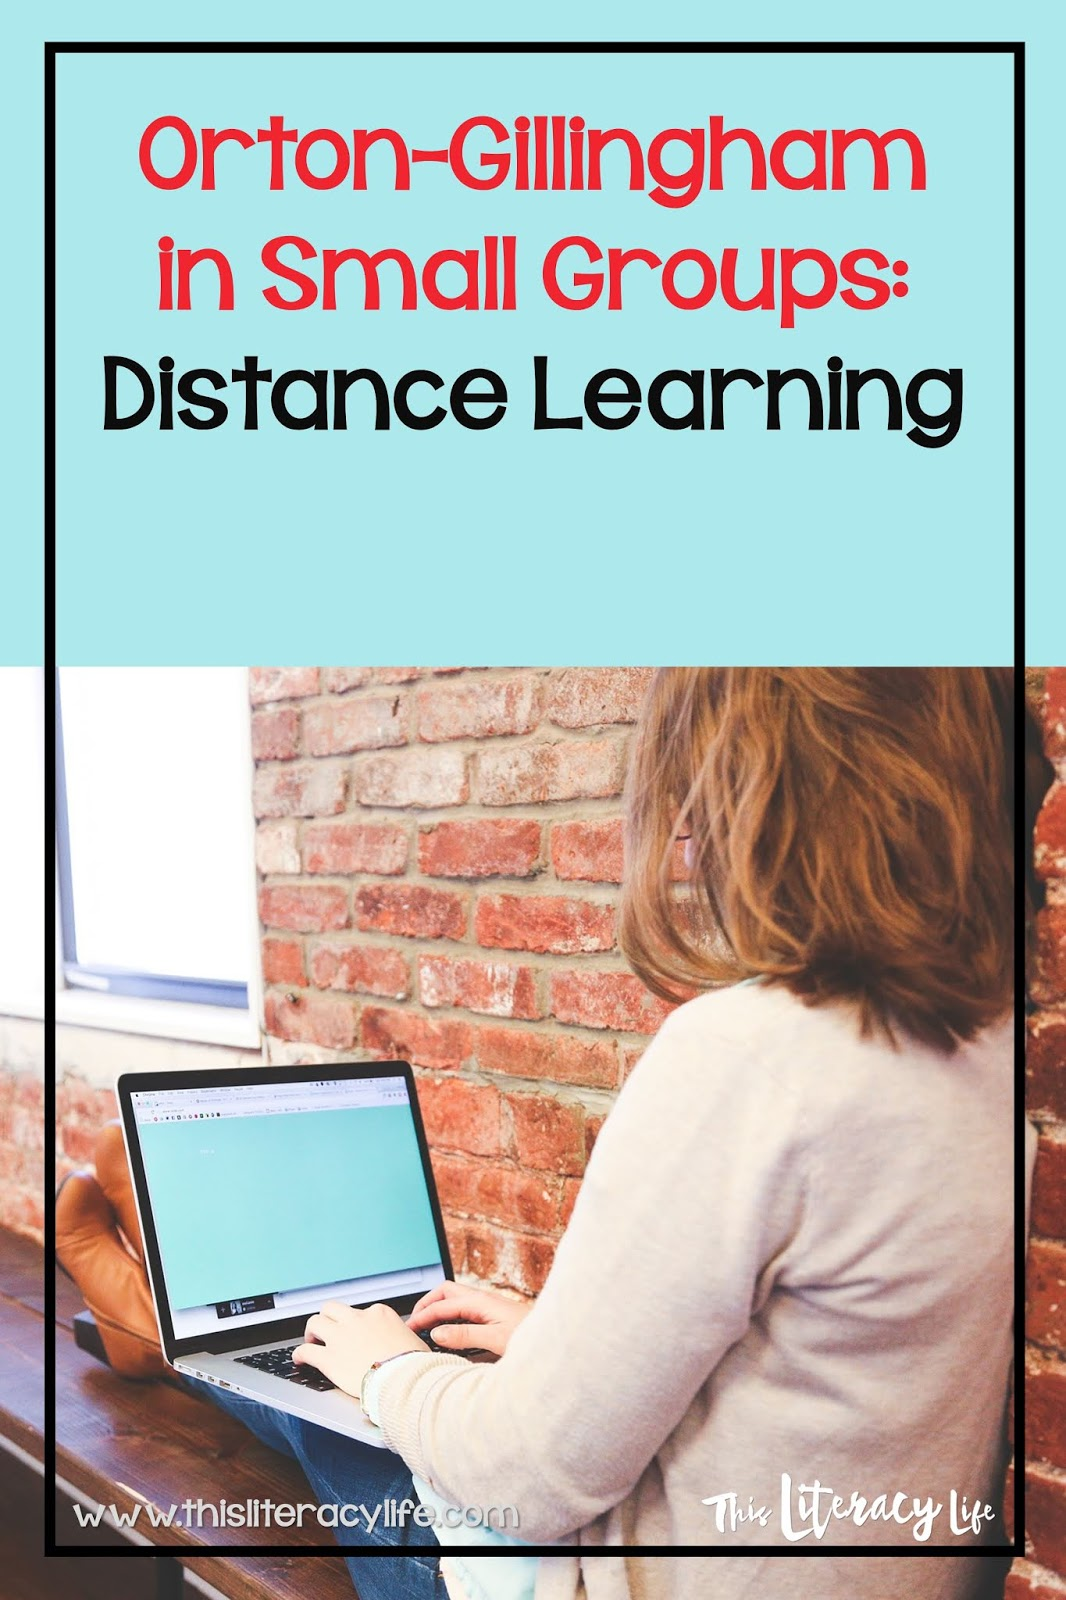 Helping your students can be easy with products to help with distance learning.